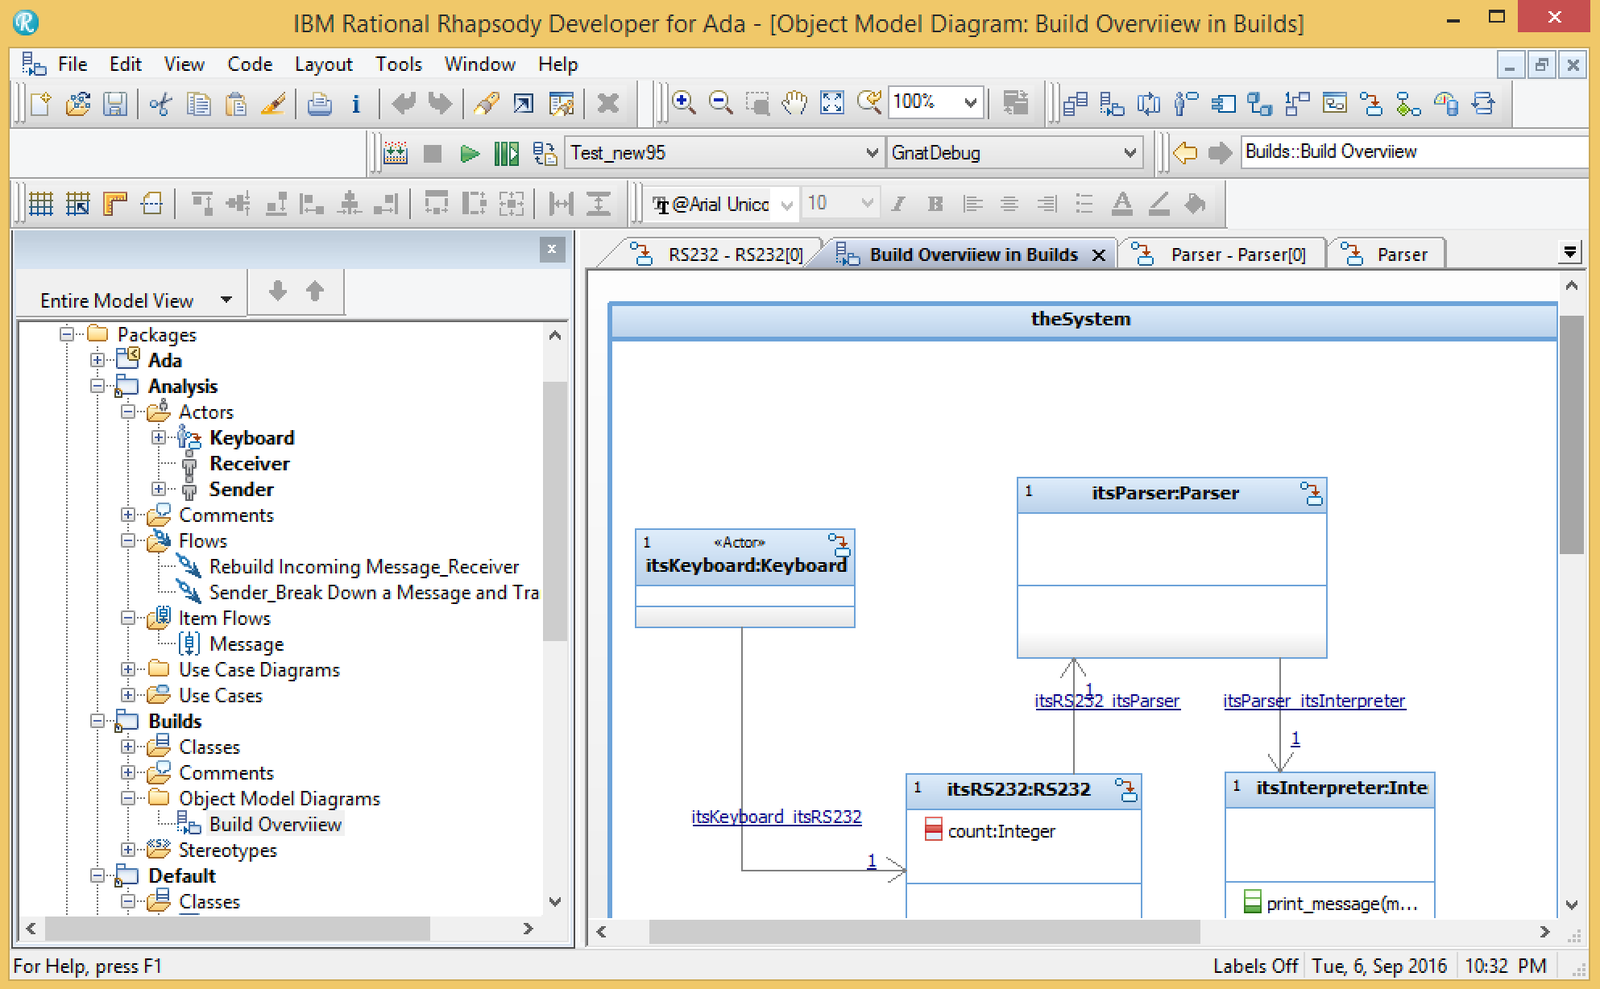 Rhapsody in Ada Engineering Software Tools and Mega Enterprise Architecture